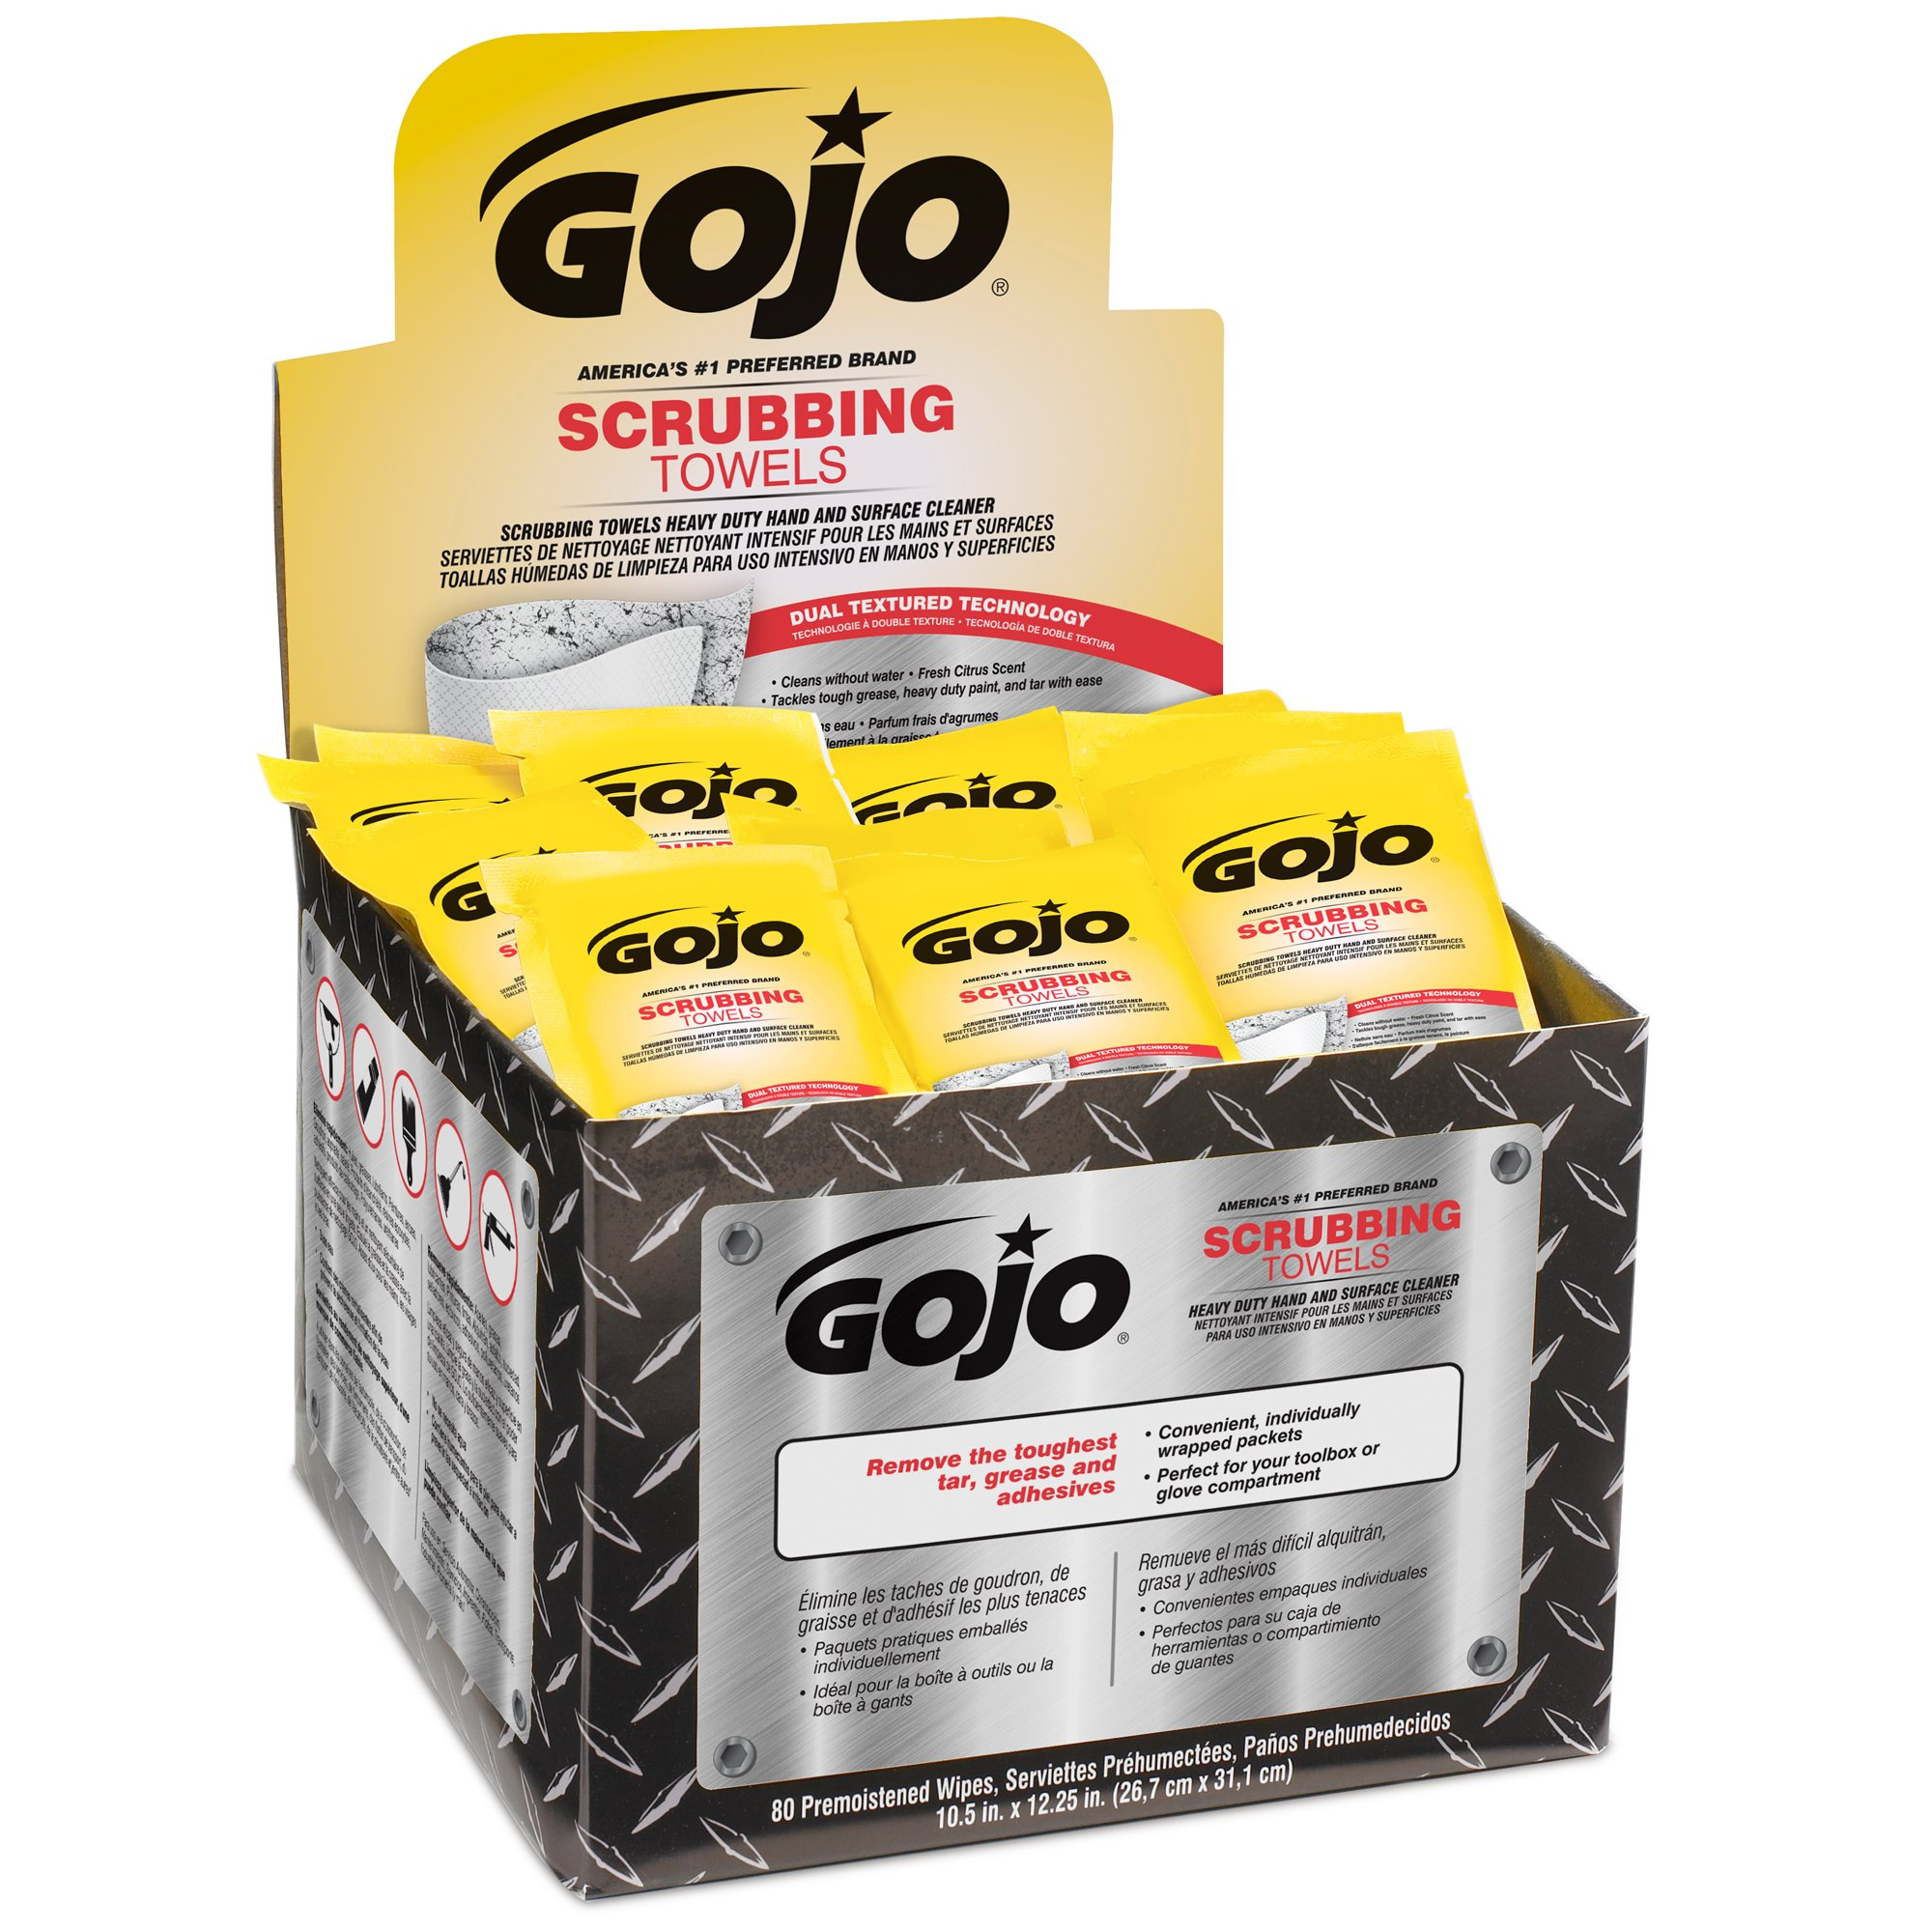 GOJO 8745-04 Scrubbing Towels, 80 Count Individually Wrapped, Heavy Duty Hand Cleaning for Hands and Surfaces, 23.16 fl. oz., X-Large